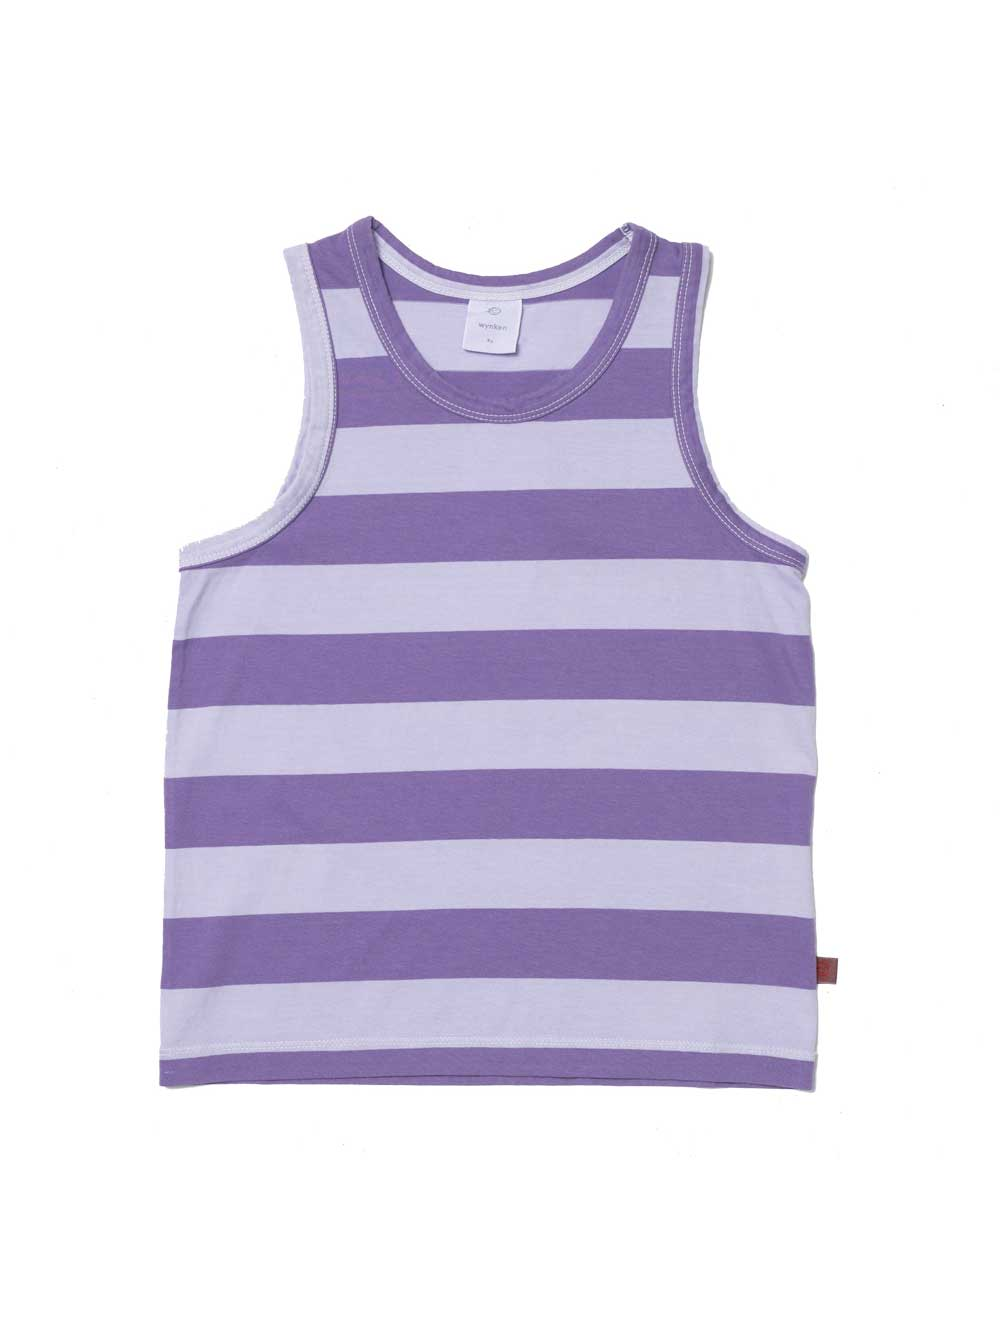 Purple Striped Tank Top